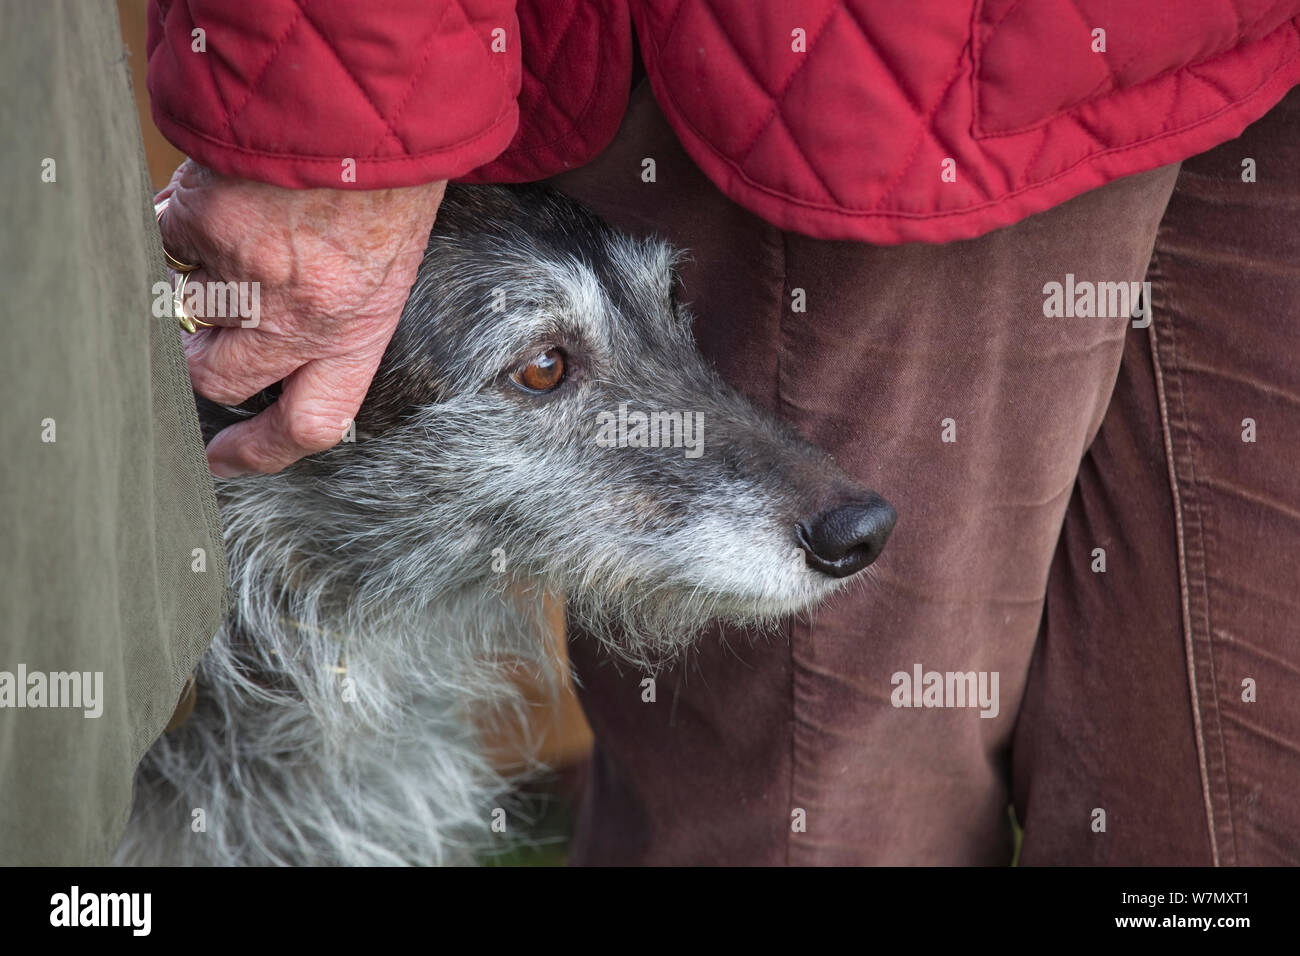 Portrait of Lurcher dog standing close to owner, UK, February. Stock Photo